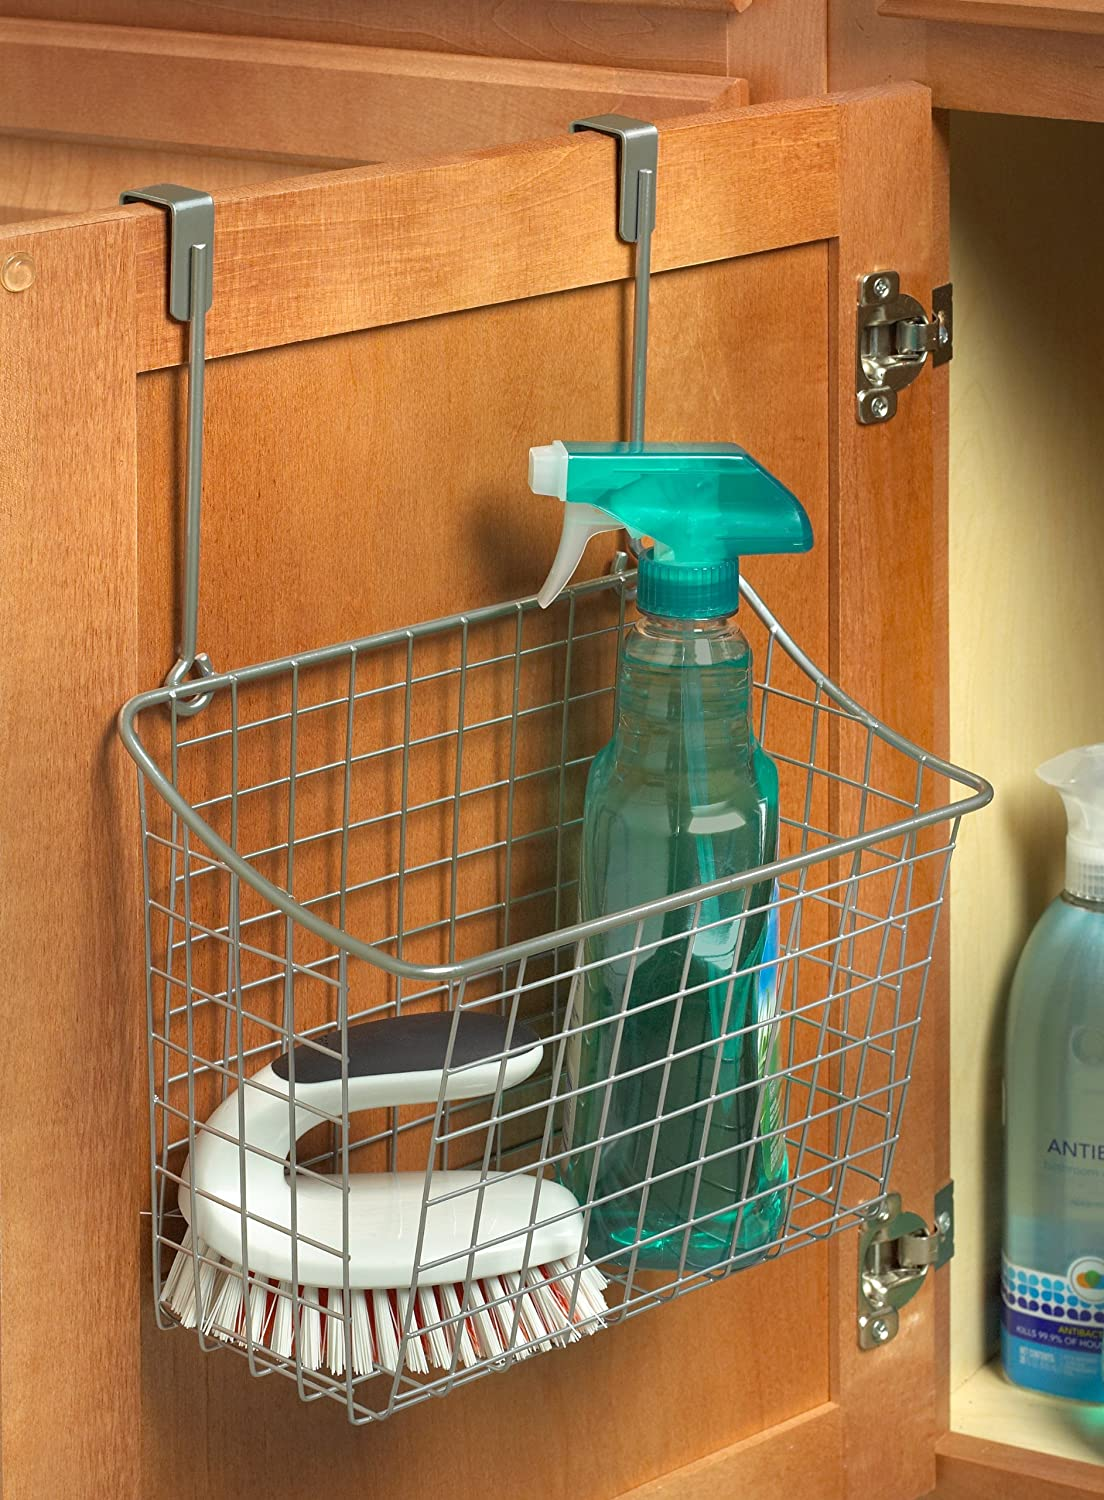 Bathroom Cabinet With Baskets Specially For Jacksonville